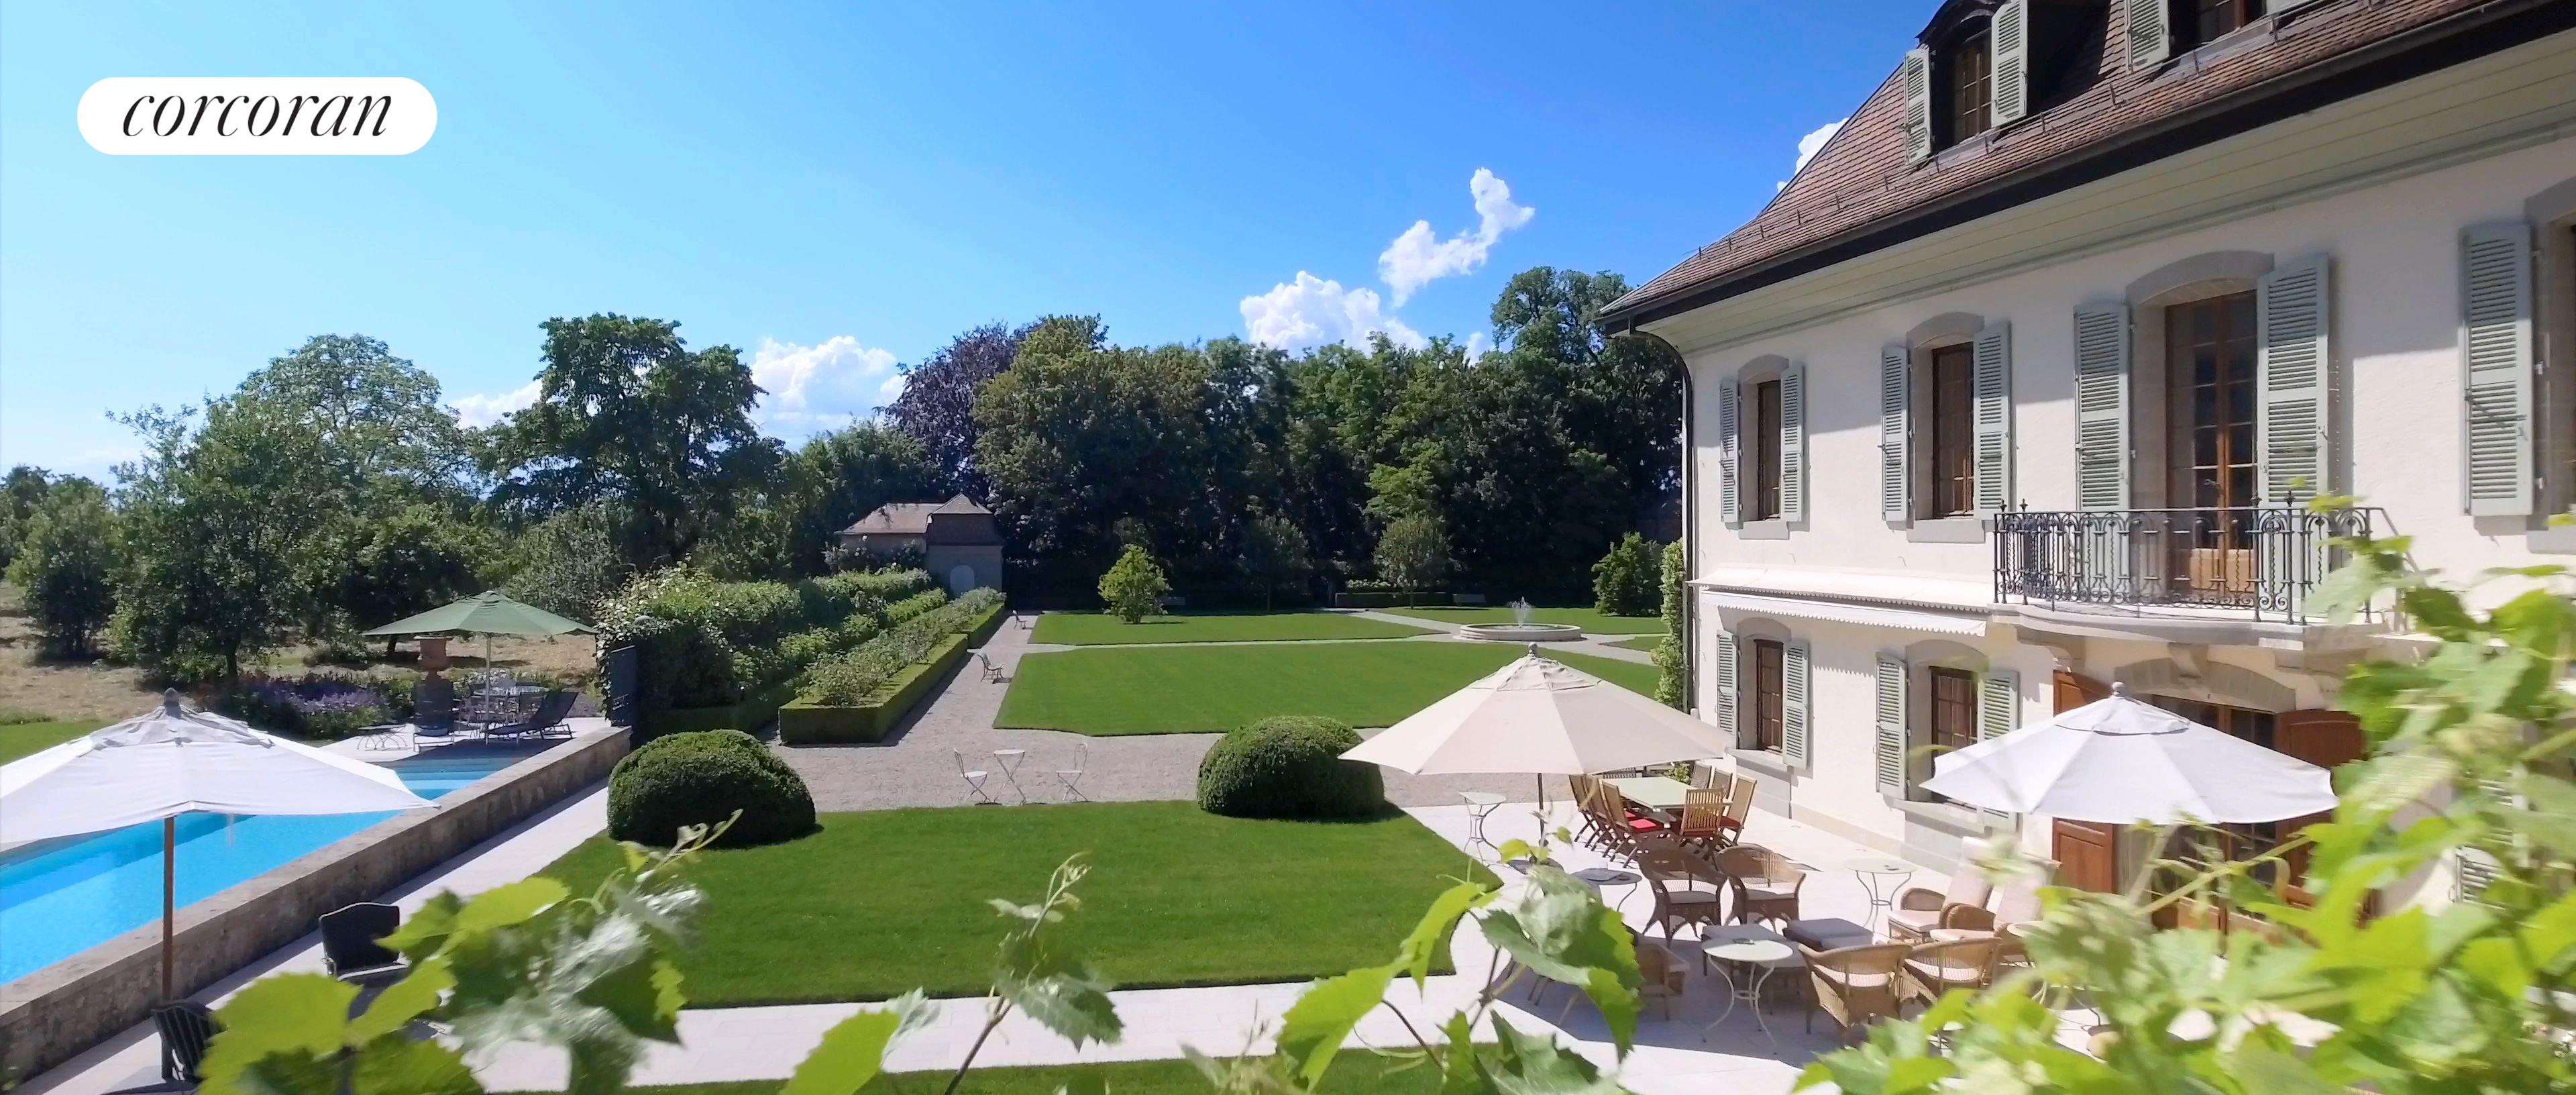 1251 GY, Canton of Geneva, View